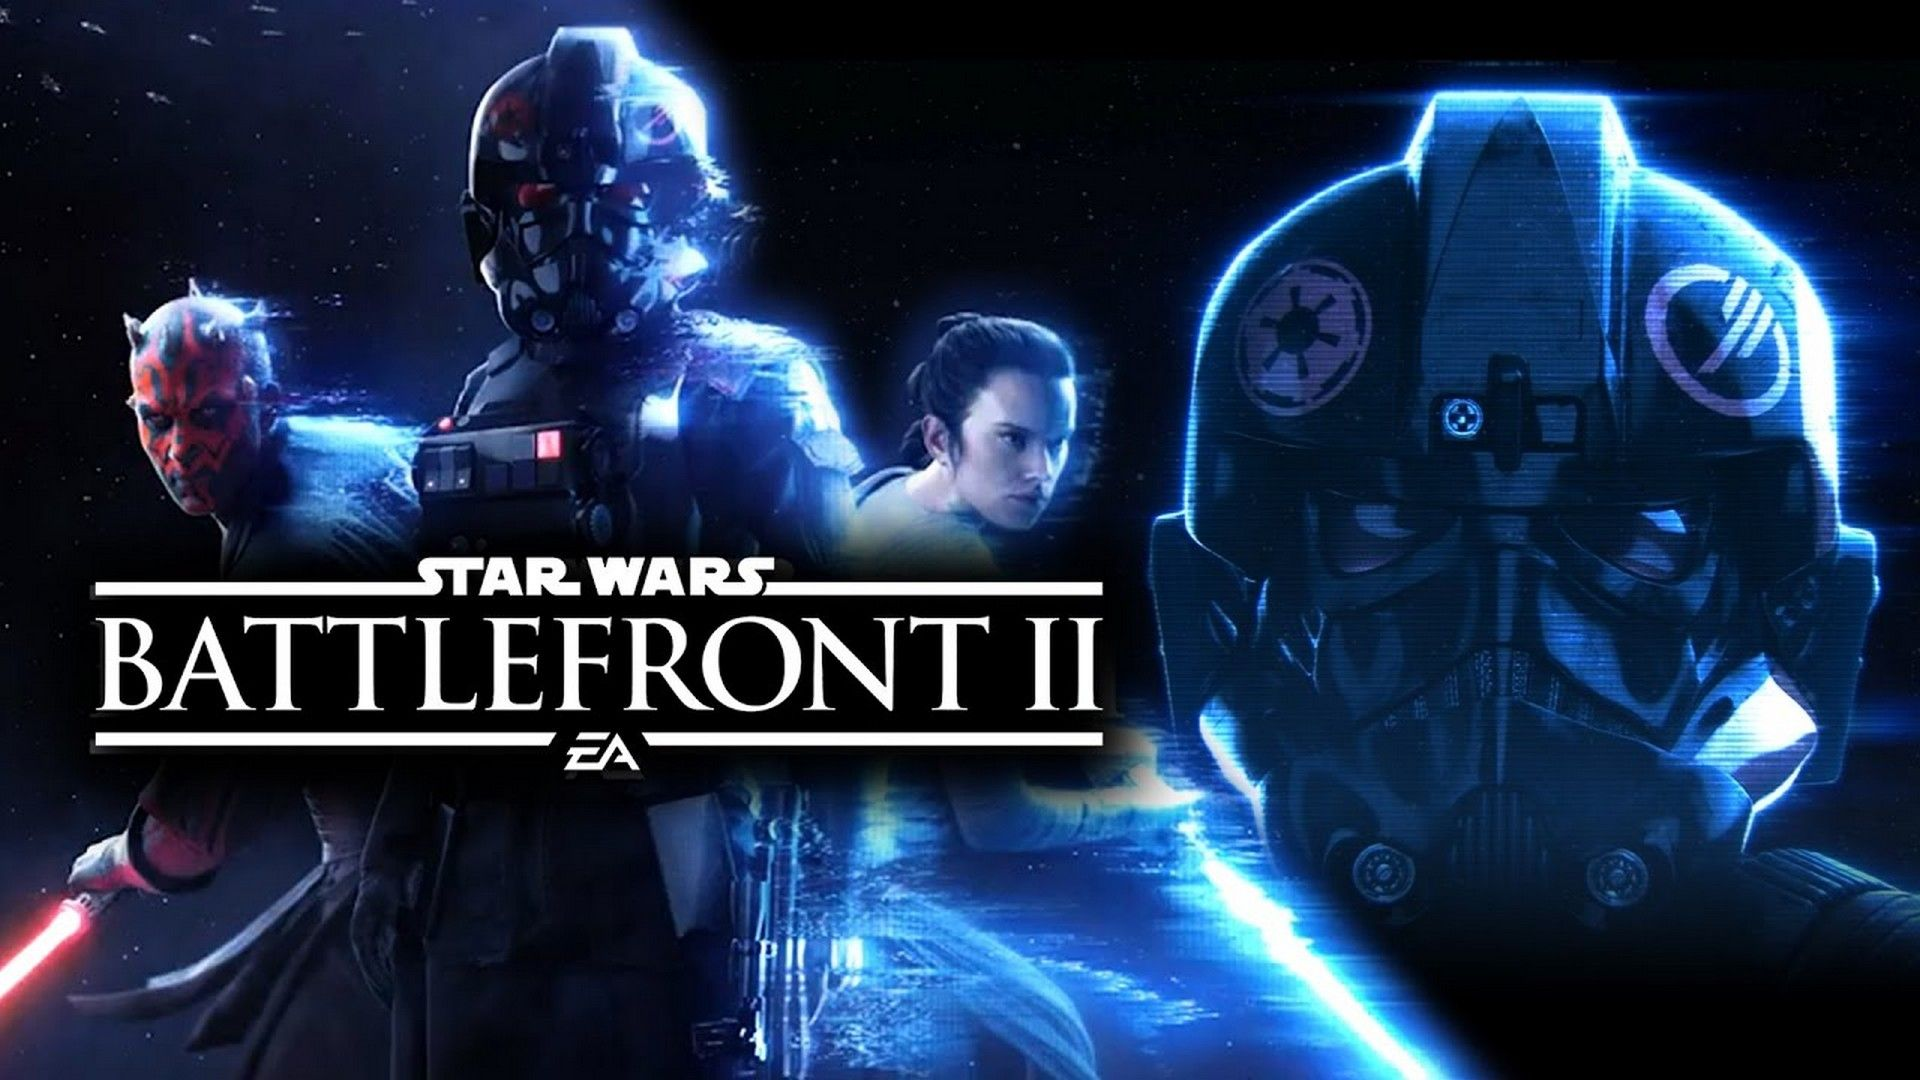 Star Wars Battlefront 2 Wallpaper Star Wars Star Wars